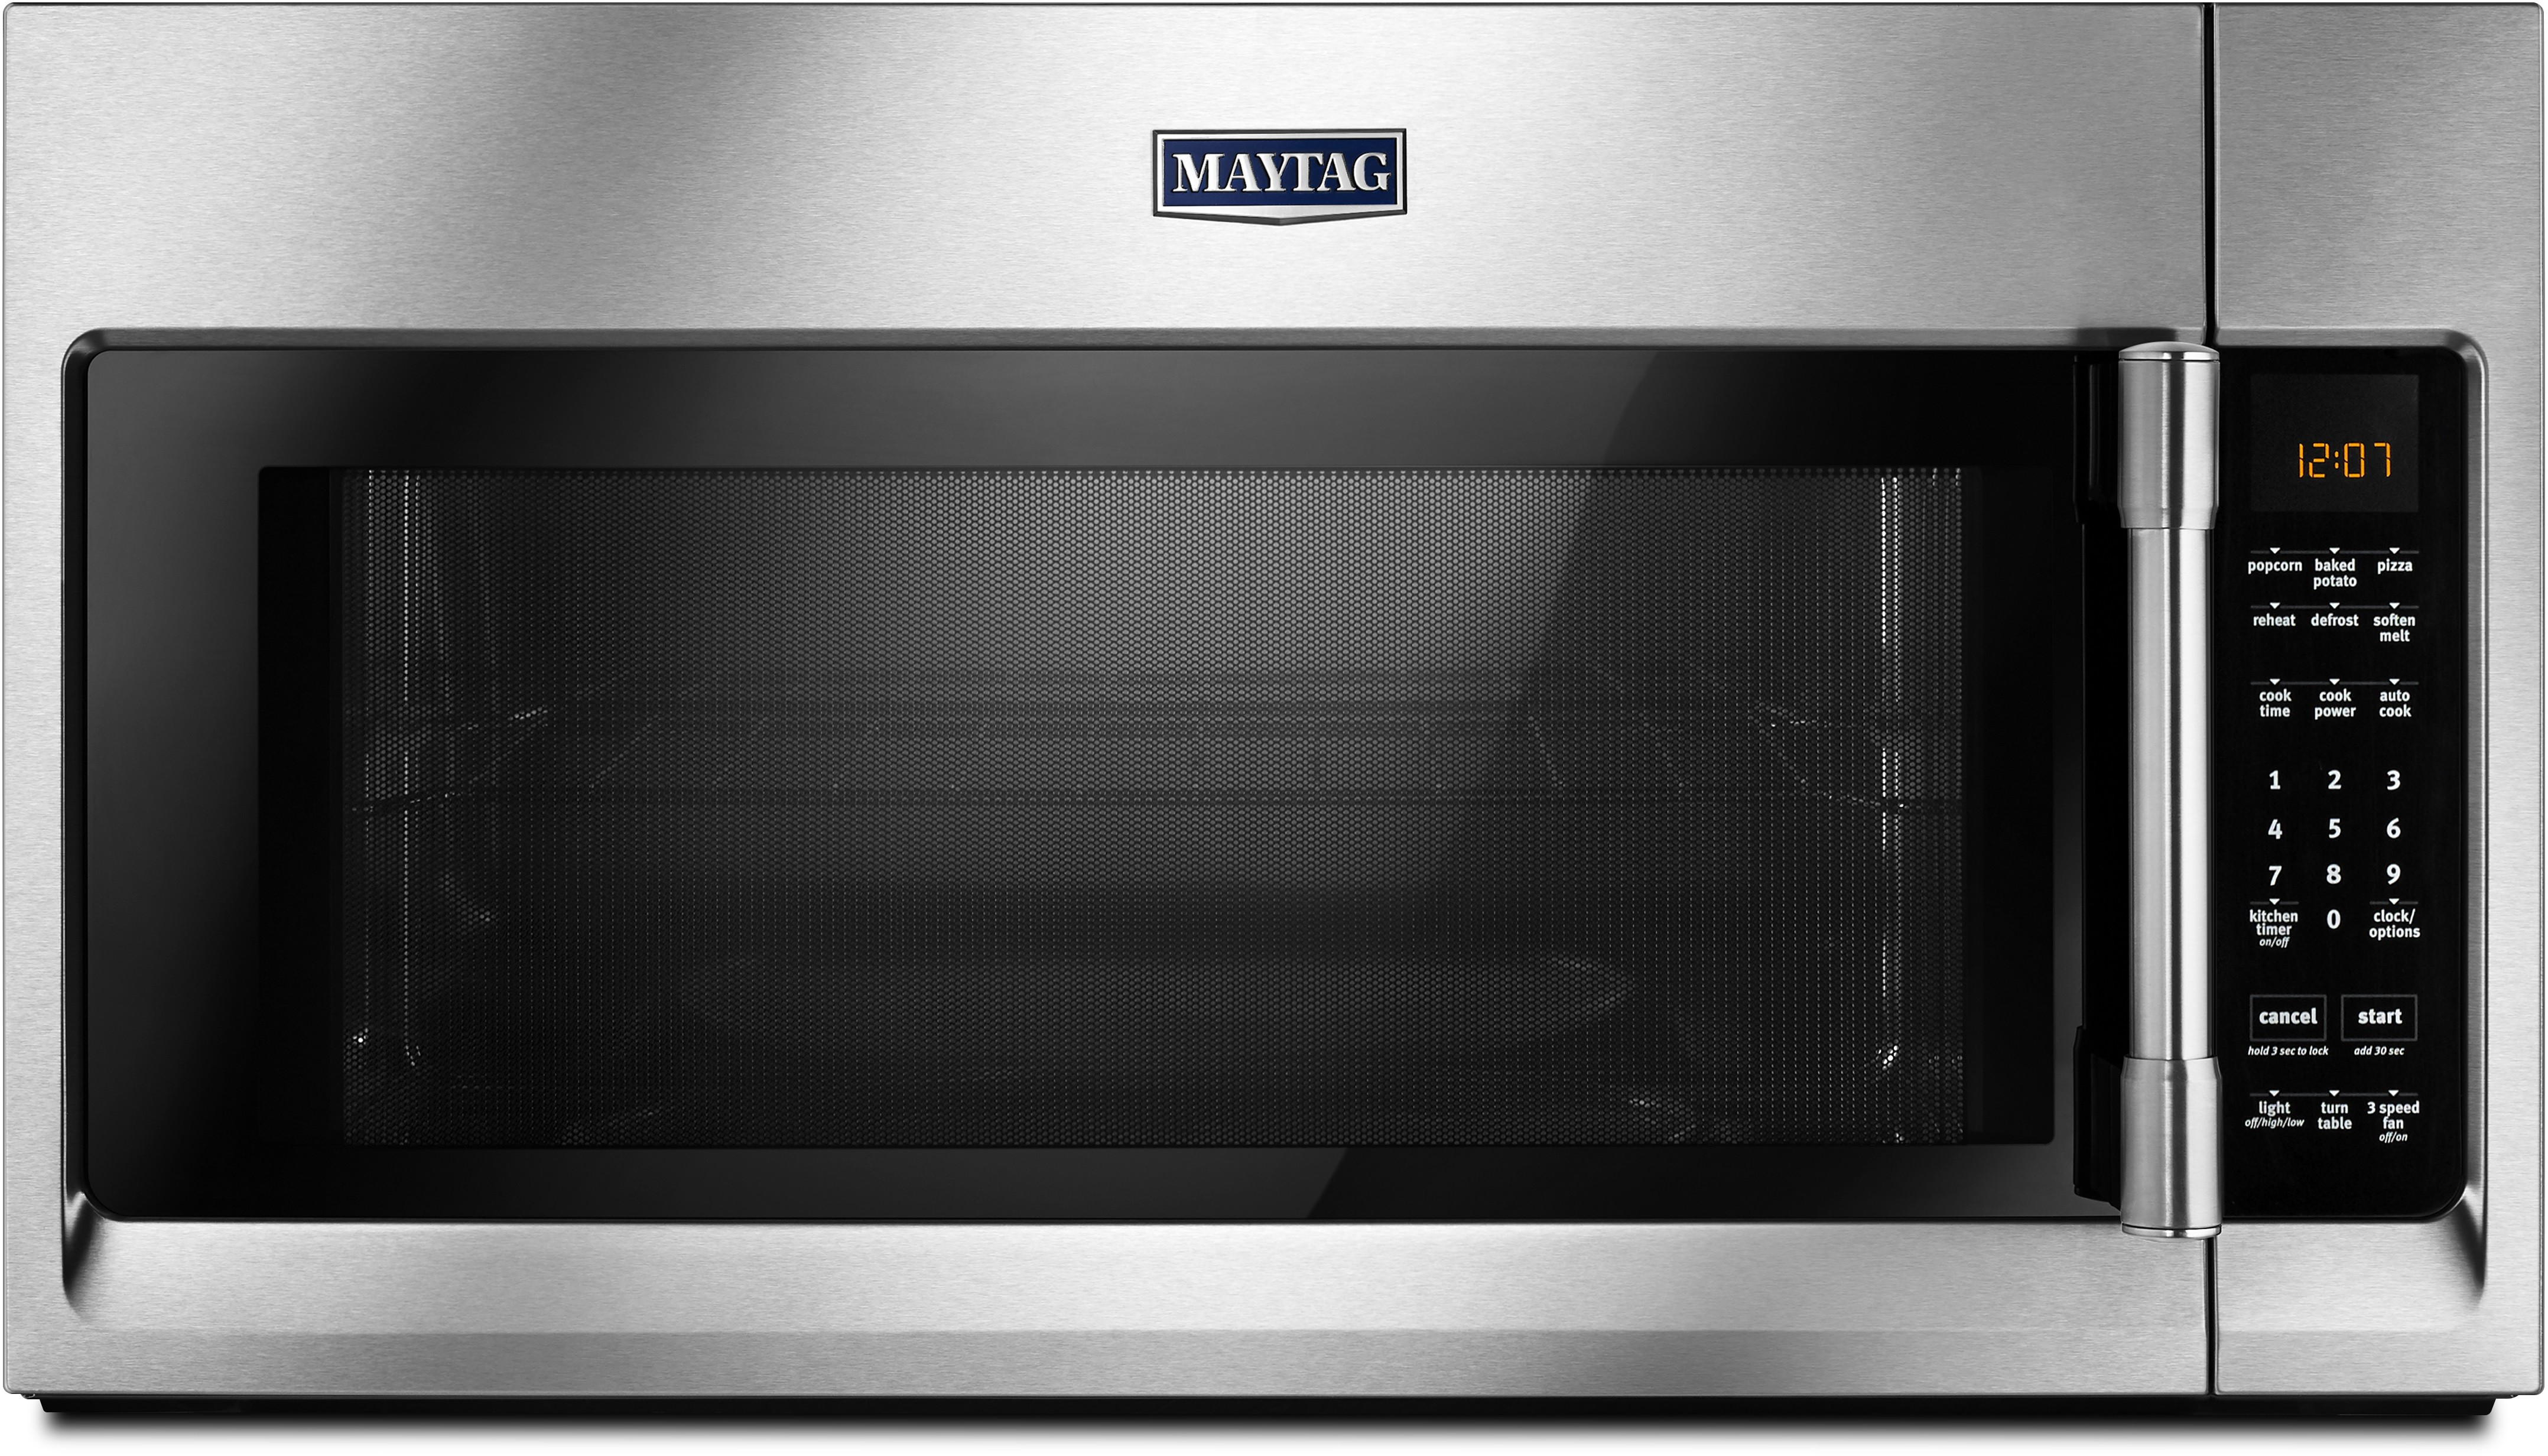 Maytag Mmv4206fz 30 Inch Over The Range Microwave Oven With 1 000 Cooking Watts 400 Cfm Sensor Reheat Multiple Speed Exhaust Fan Charcoal Odor Filter Control Lock And 2 Cu Ft Capacity Fingerprint Resistant Stainless Steel